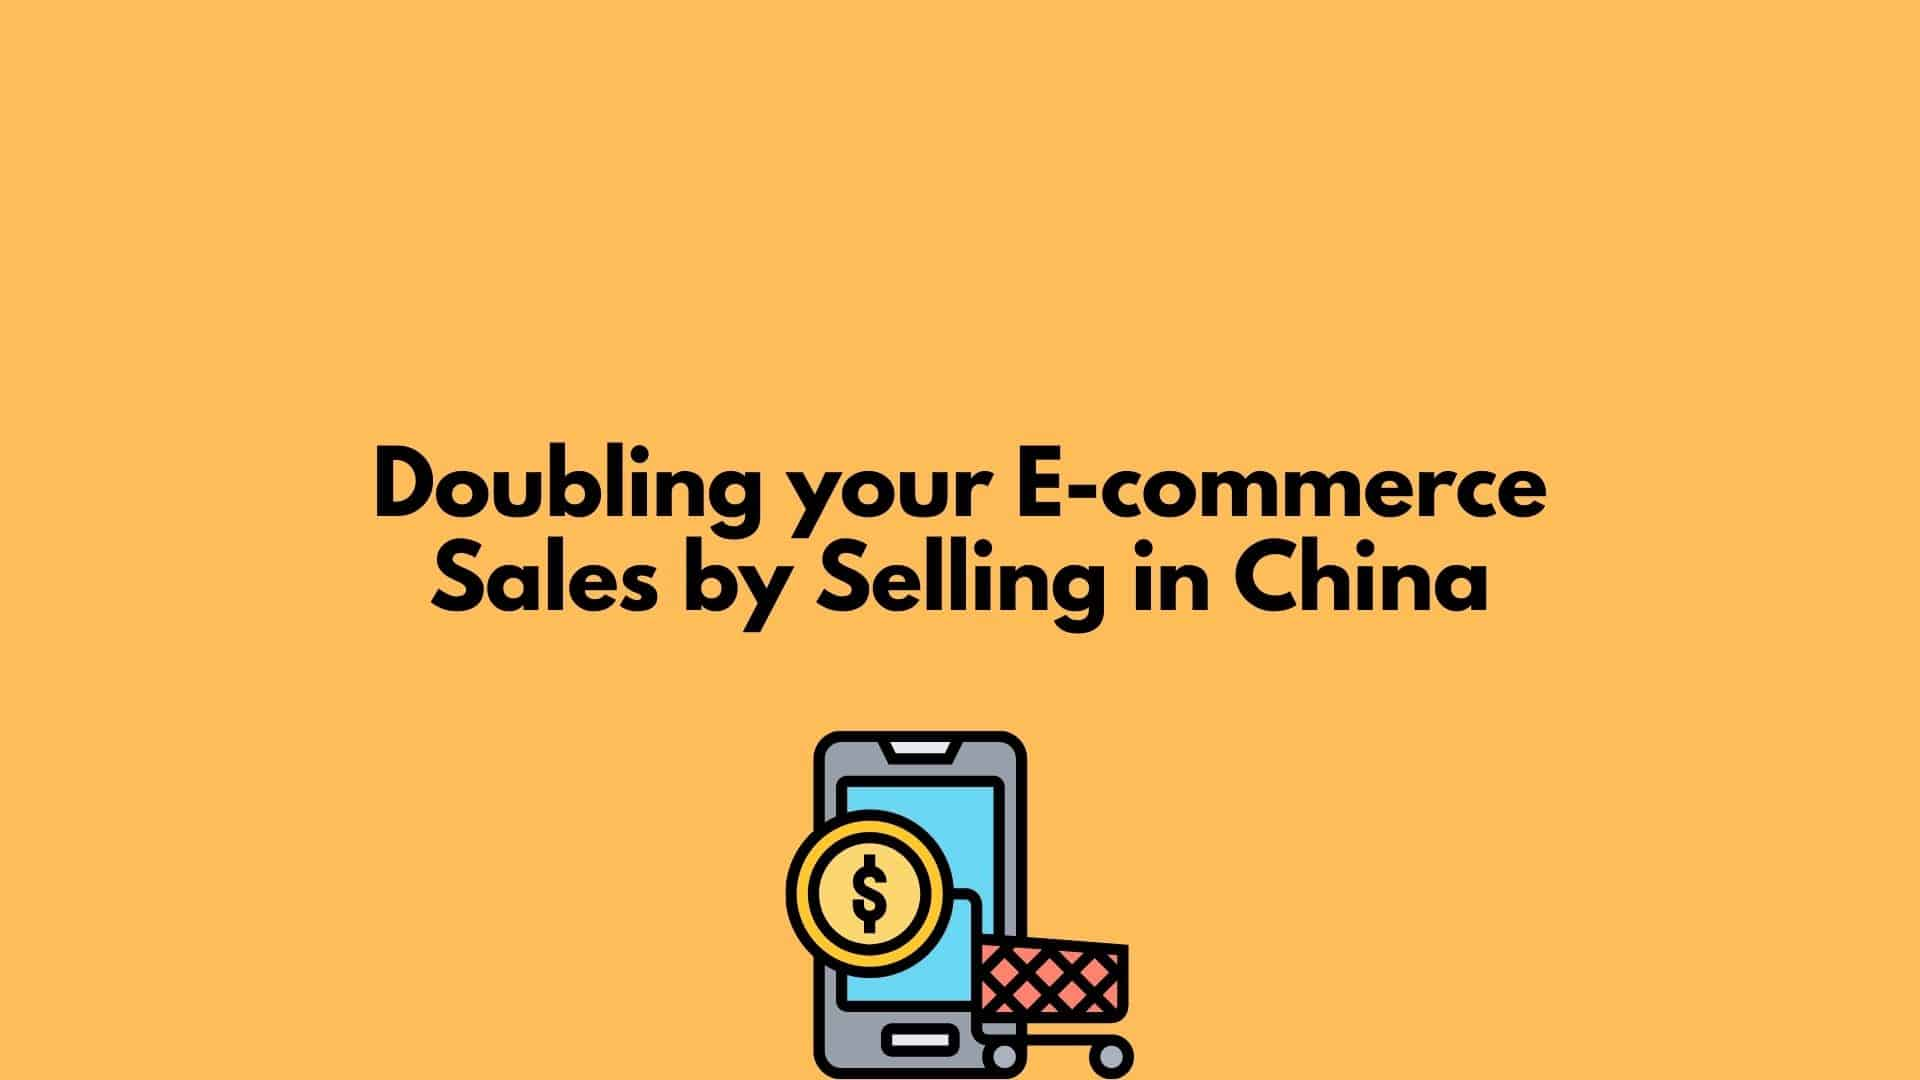 A Guide to 2x your E-commerce Sales by Selling in China